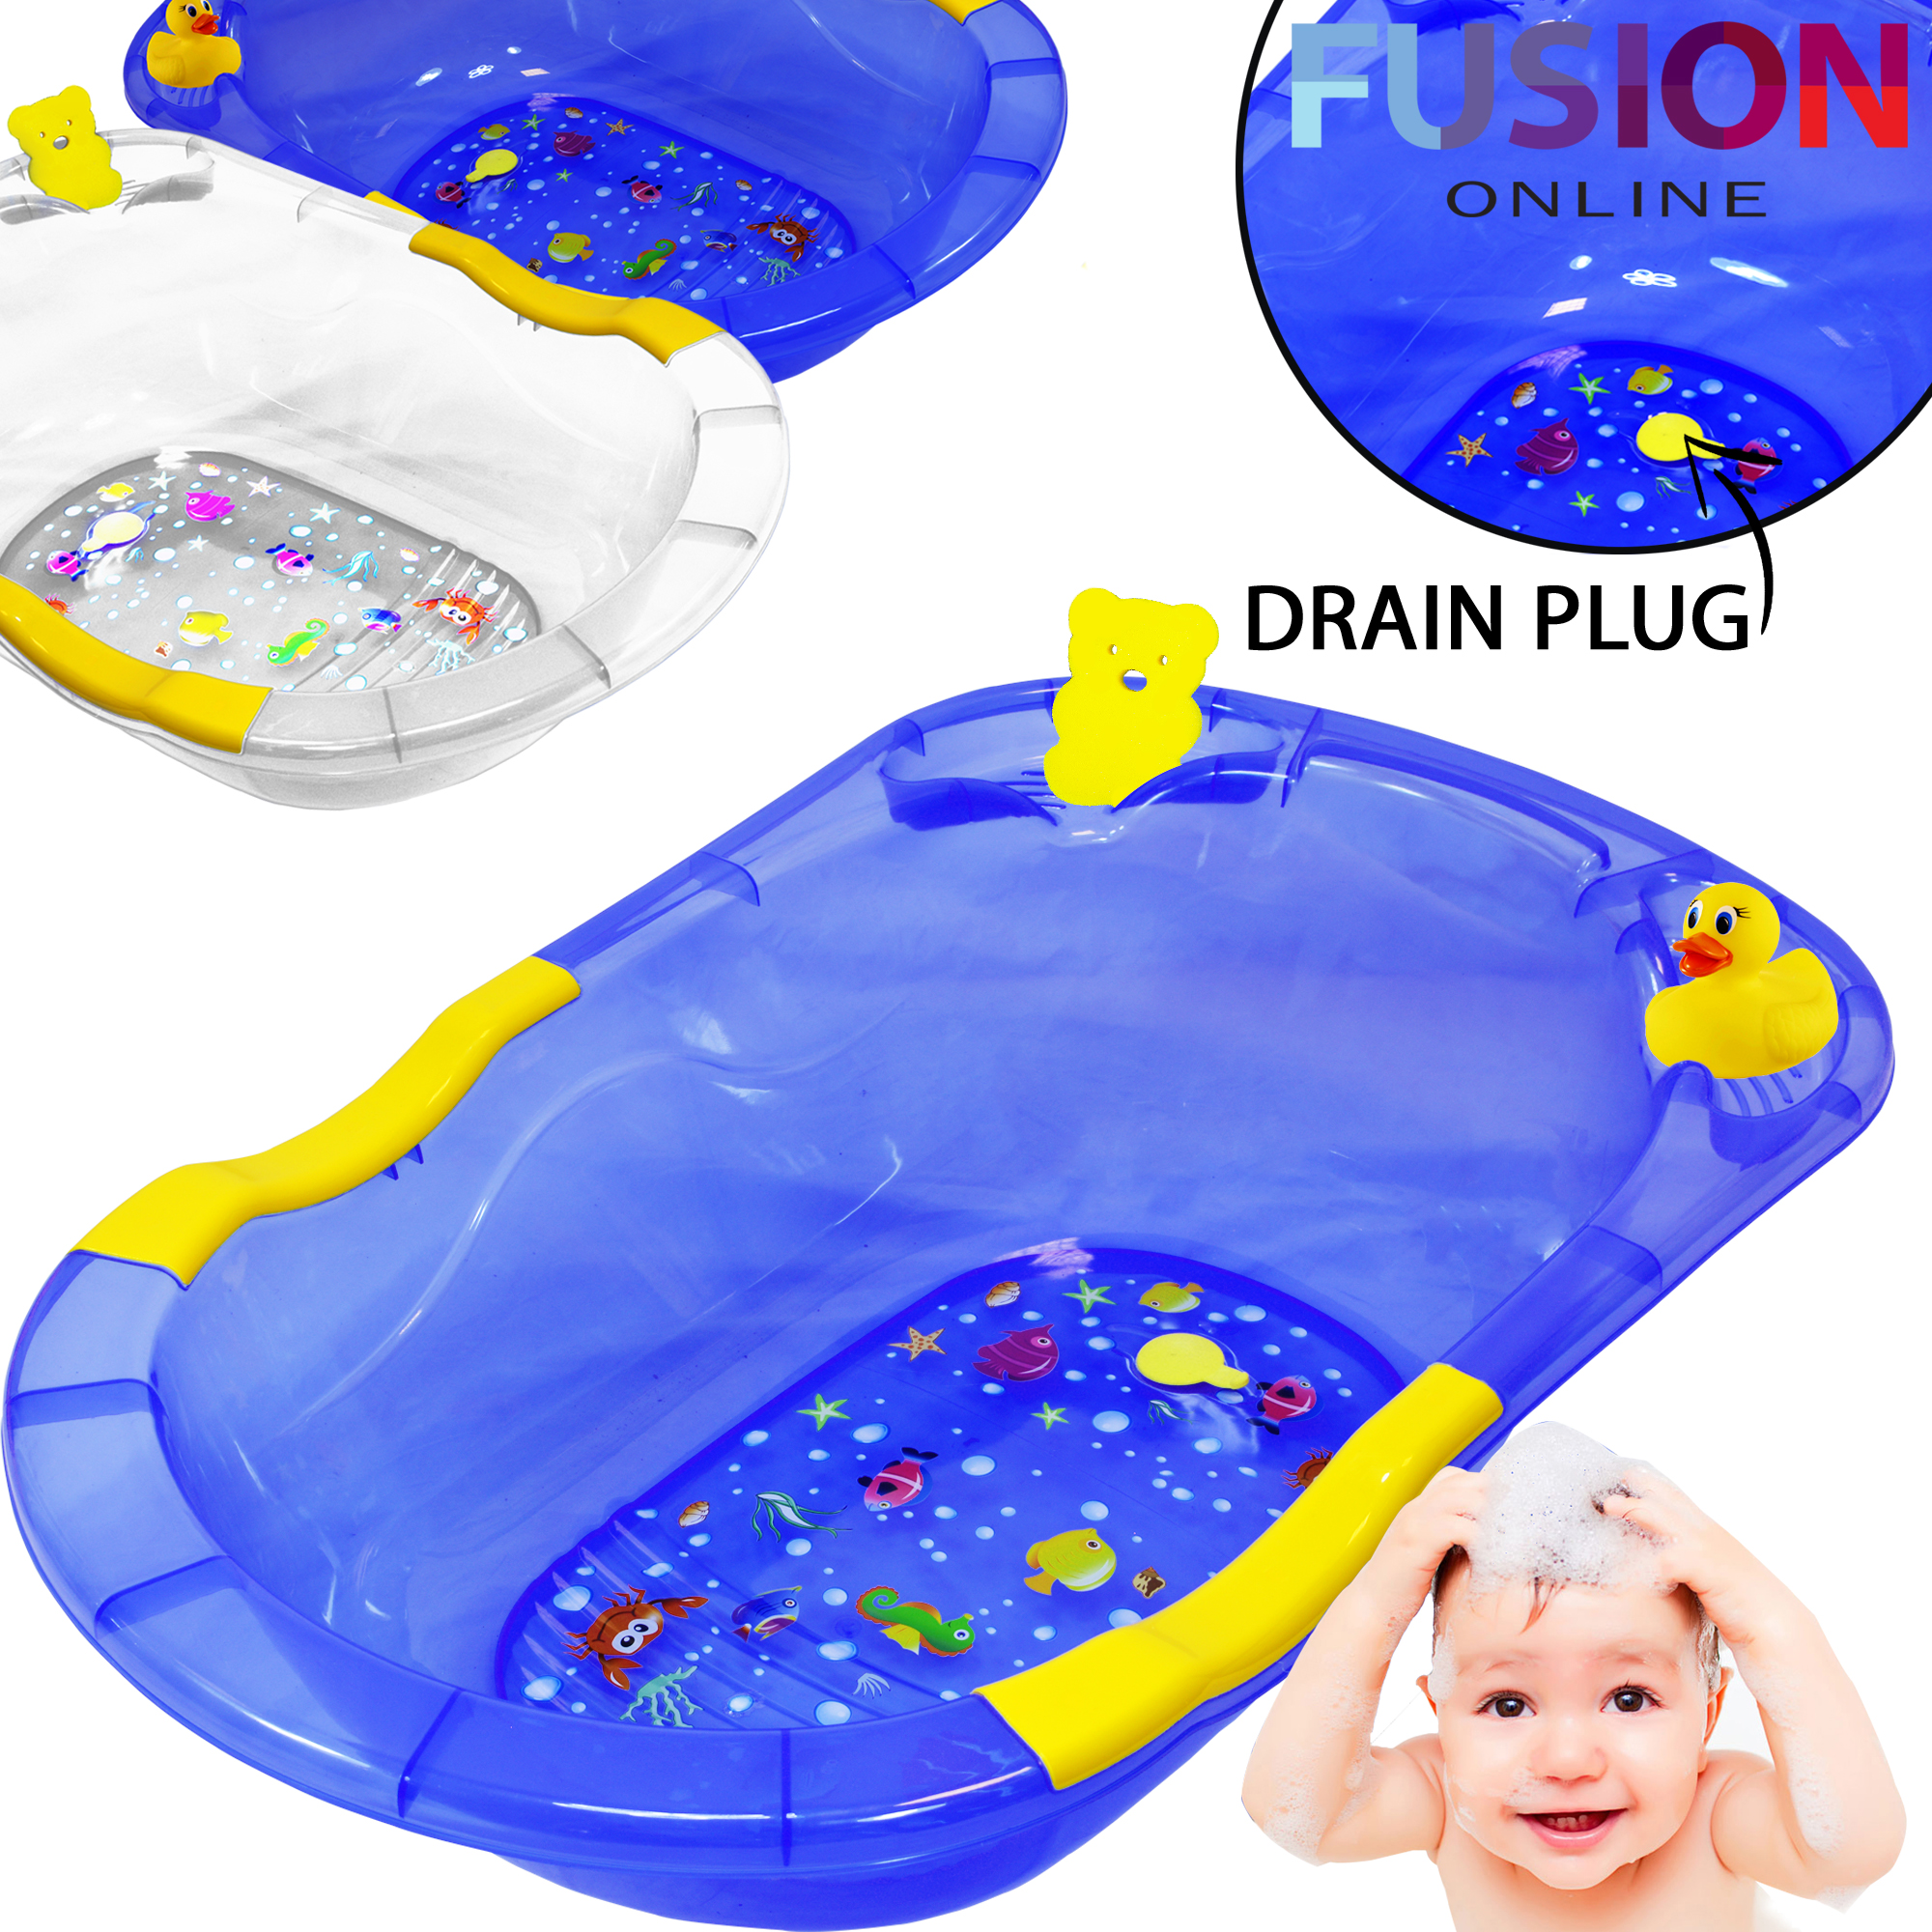 JUMBO X LARGE BABY BATH TUB PLASTIC WASHING TIME BIG TODDLER BASKET ...